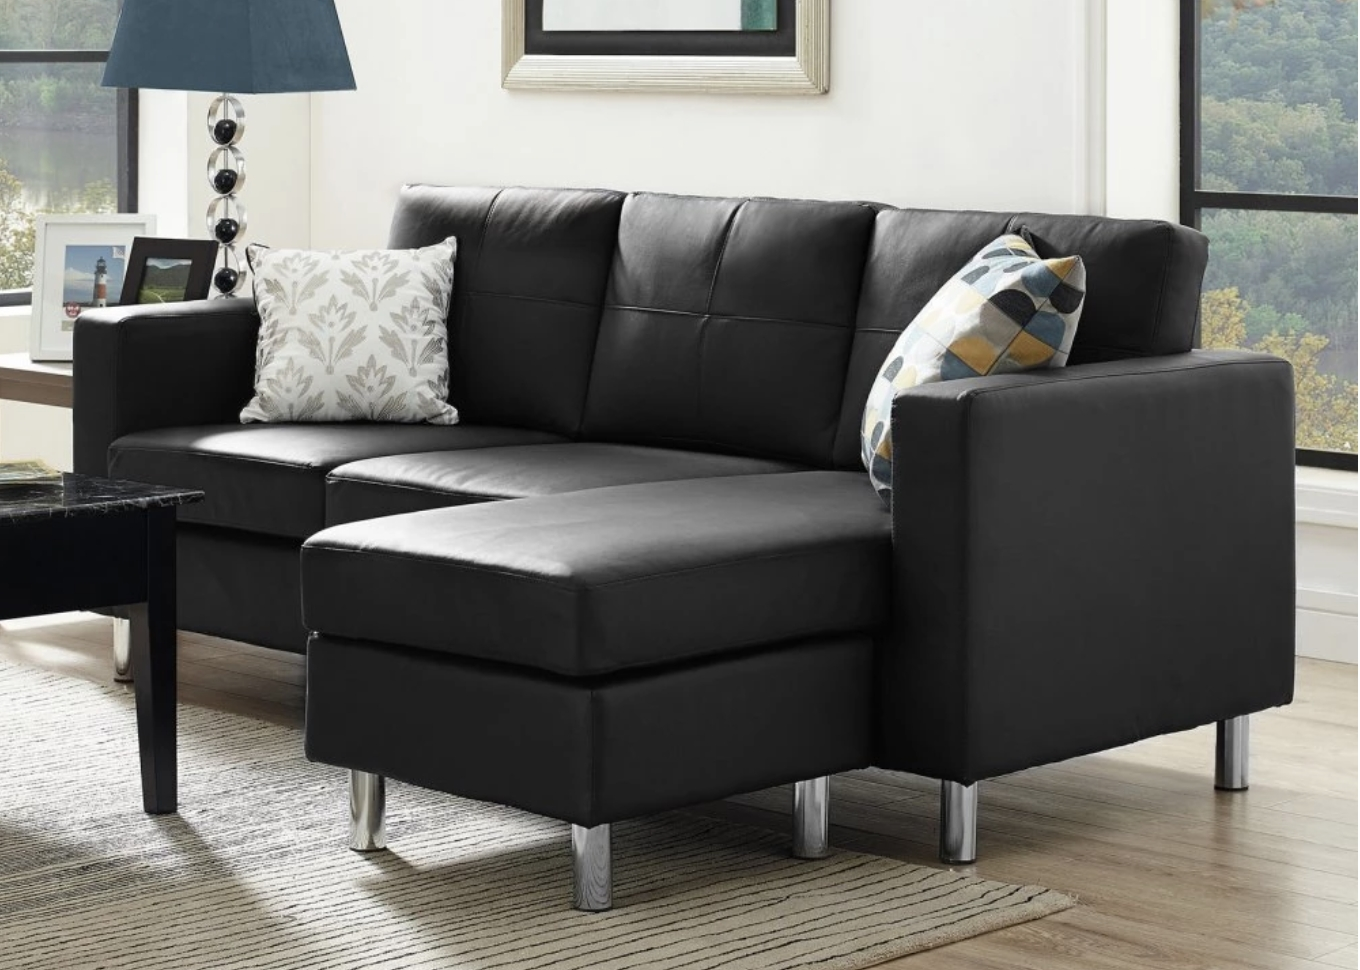 Most Current Narrow Spaces Sectional Sofas For 75 Modern Sectional Sofas For Small Spaces (2018) (View 5 of 20)